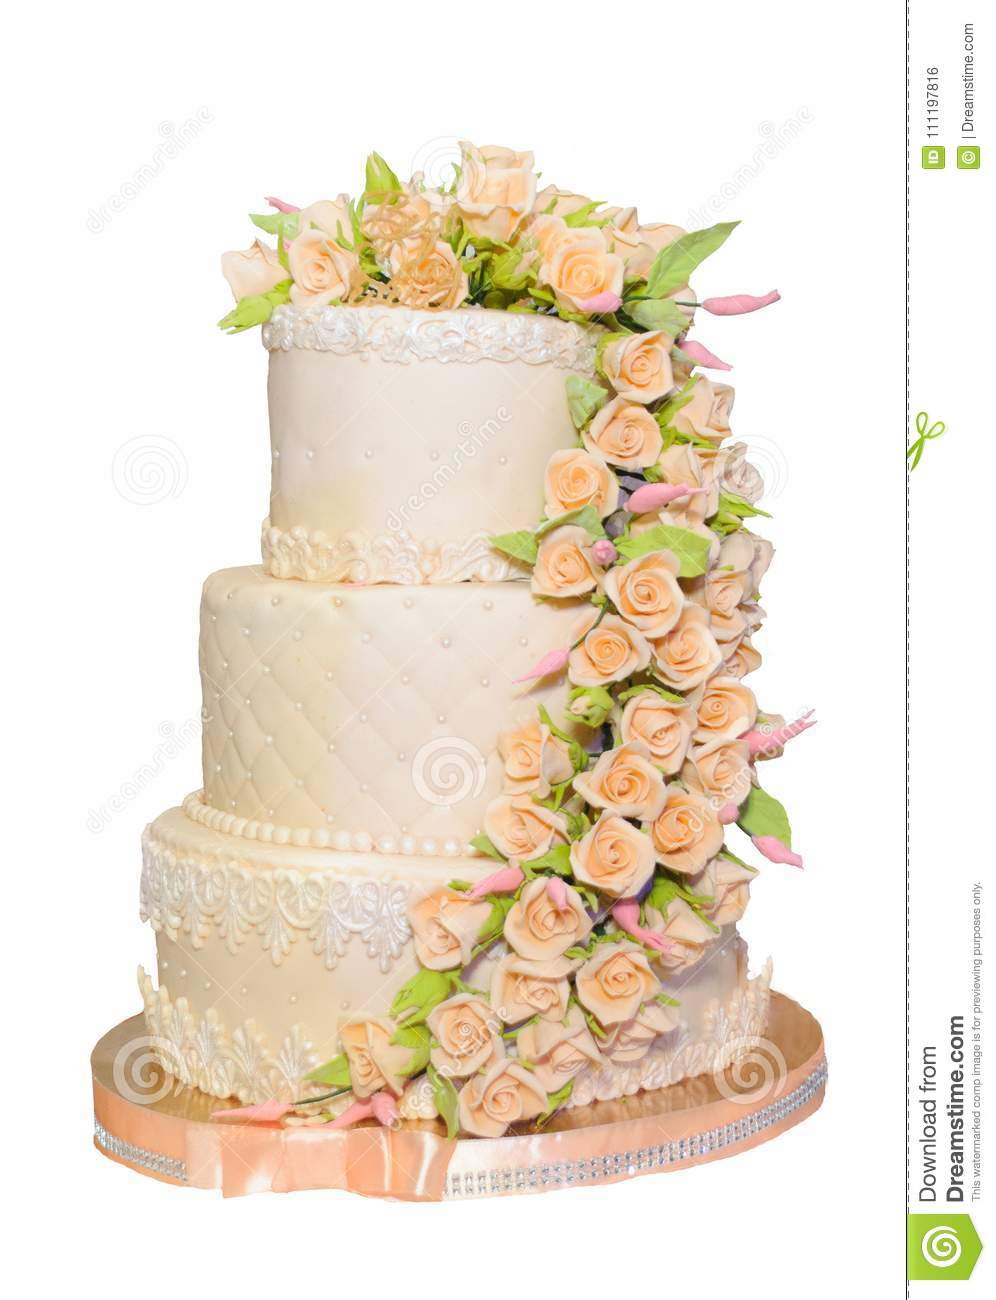 Wedding Cake In Coral Color Stock Photo - Image of ribbons, white ...